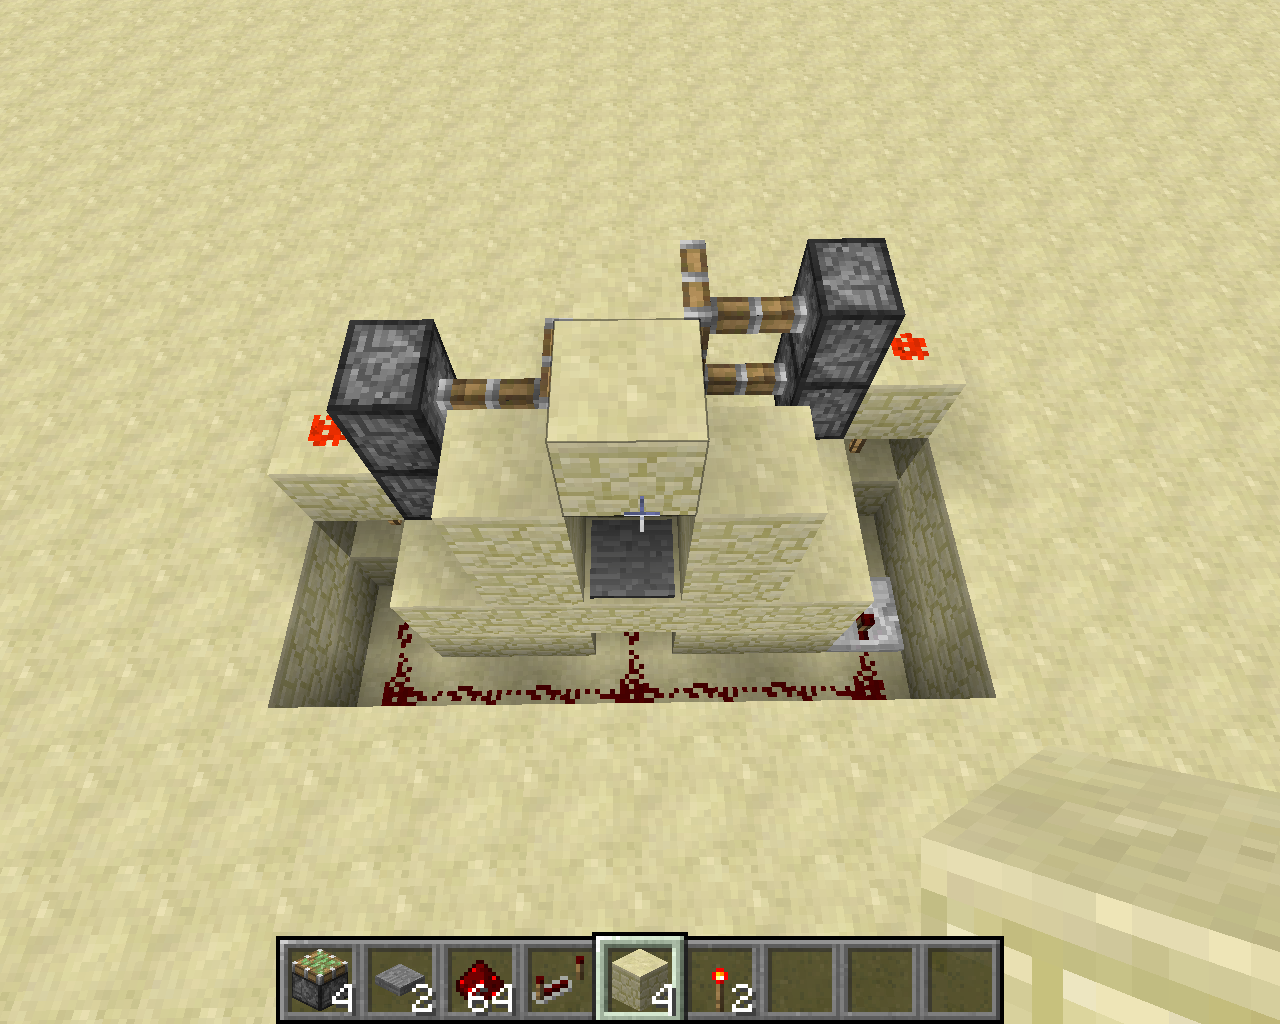 Picture of Redstone, Pressure Plate, Redstone Torches, and Repeaters